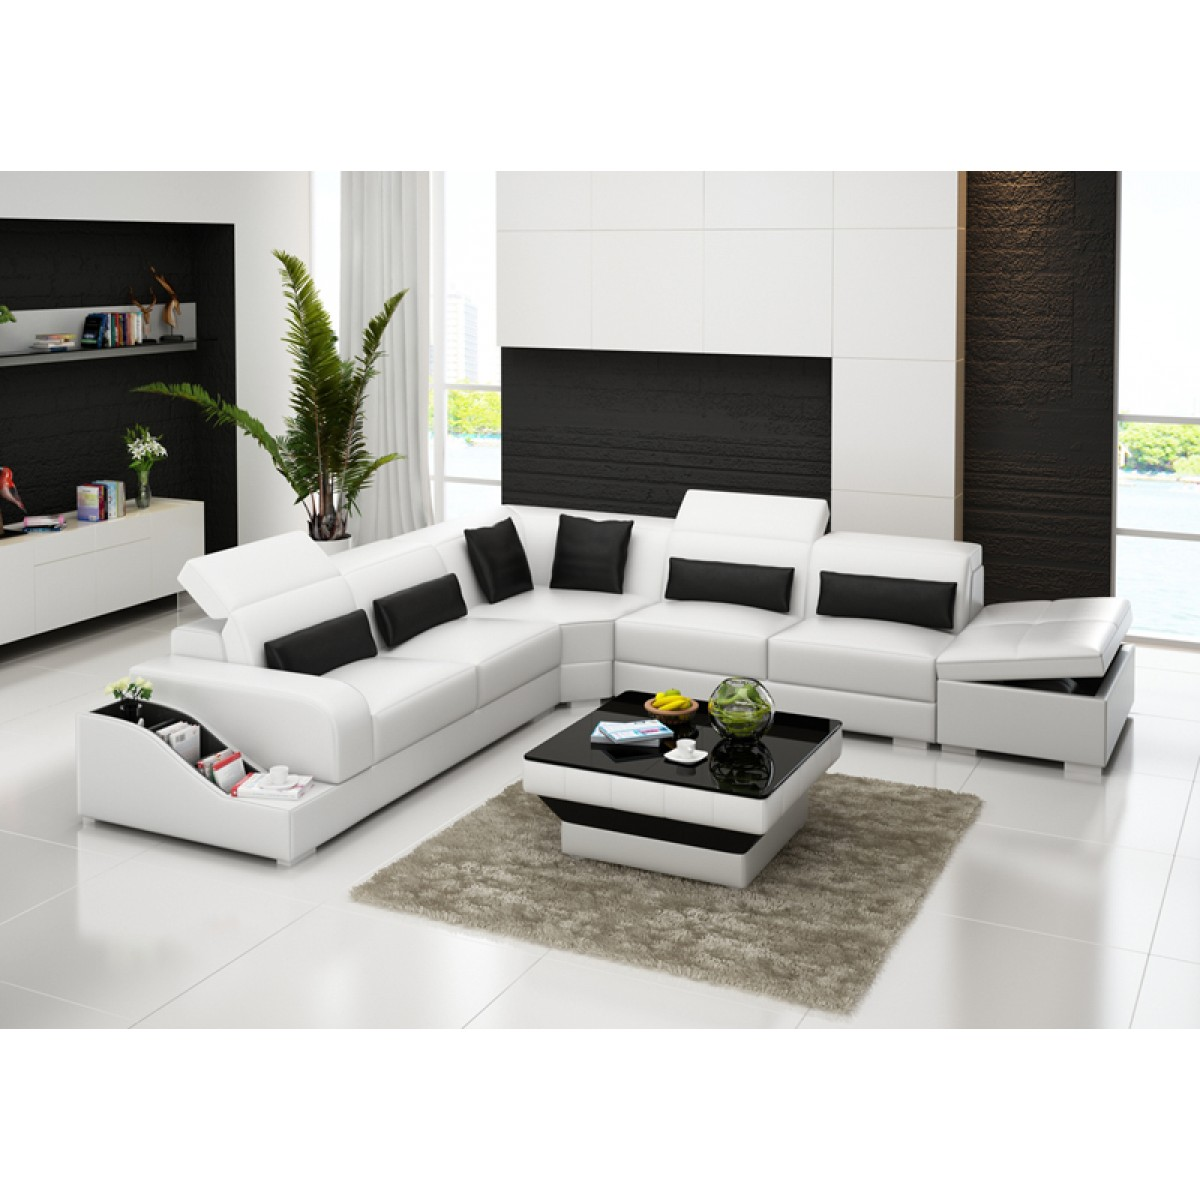 grand canap d 39 angle en cuir pleine fleur jazz coffre int gr pop. Black Bedroom Furniture Sets. Home Design Ideas